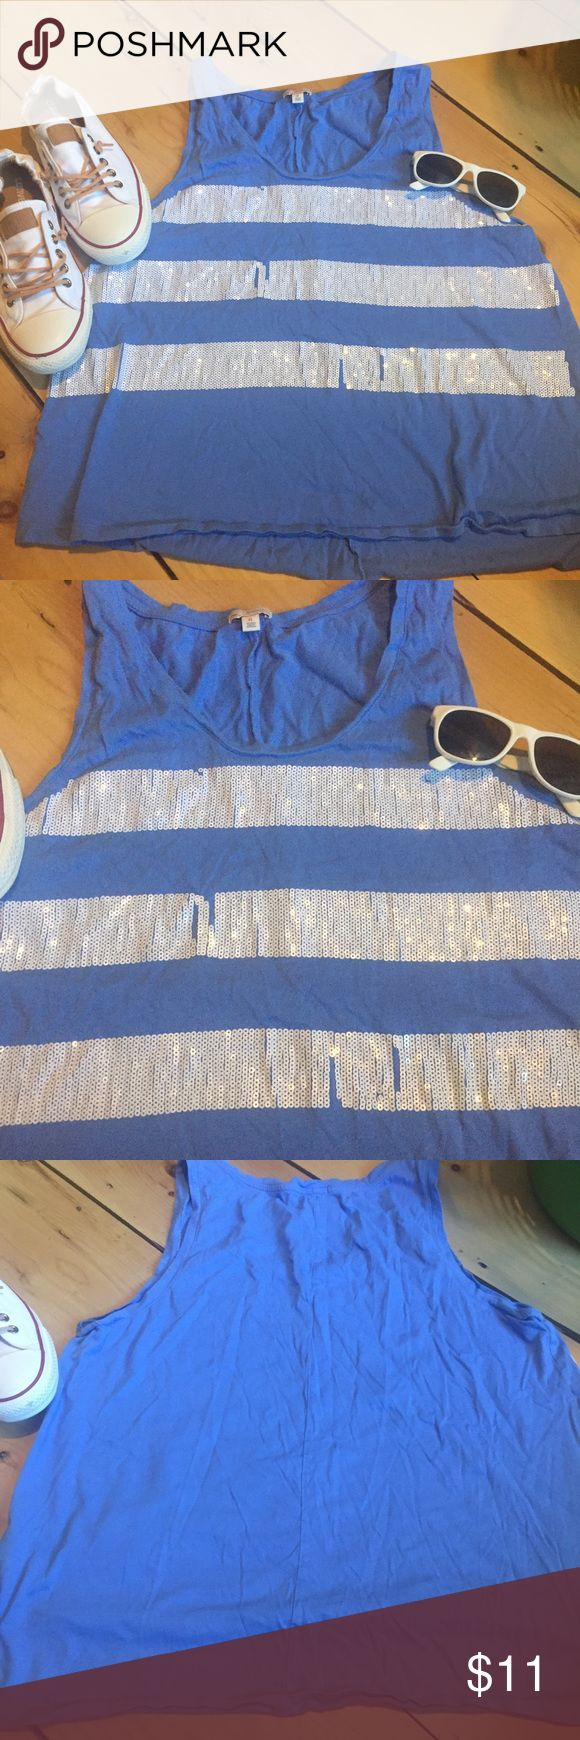 GAP Sequined Tank Top Size XL Summer 🌺 Beautiful blue tank top by Gap. Featuring white sequin stripes. Some sequins are missing but you can hardly notice when wearing. Size XL. GAP Tops Tank Tops